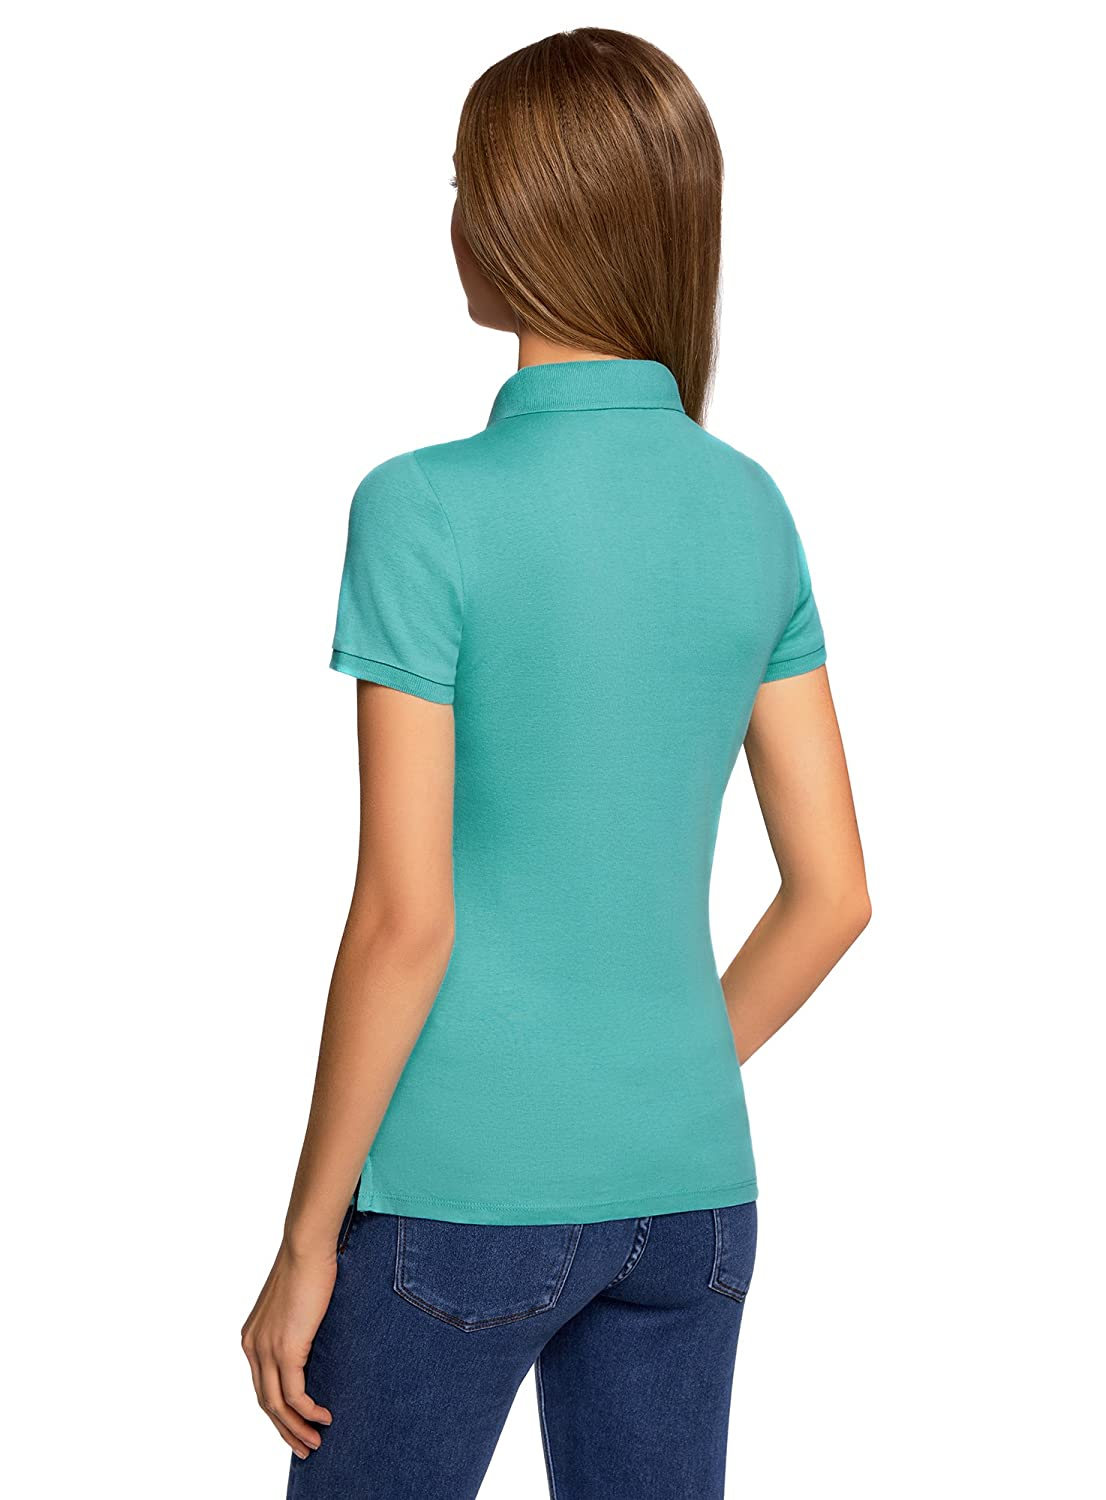 oodji Collection Damen Poloshirt mit Metallkn/öpfen und Stickerei